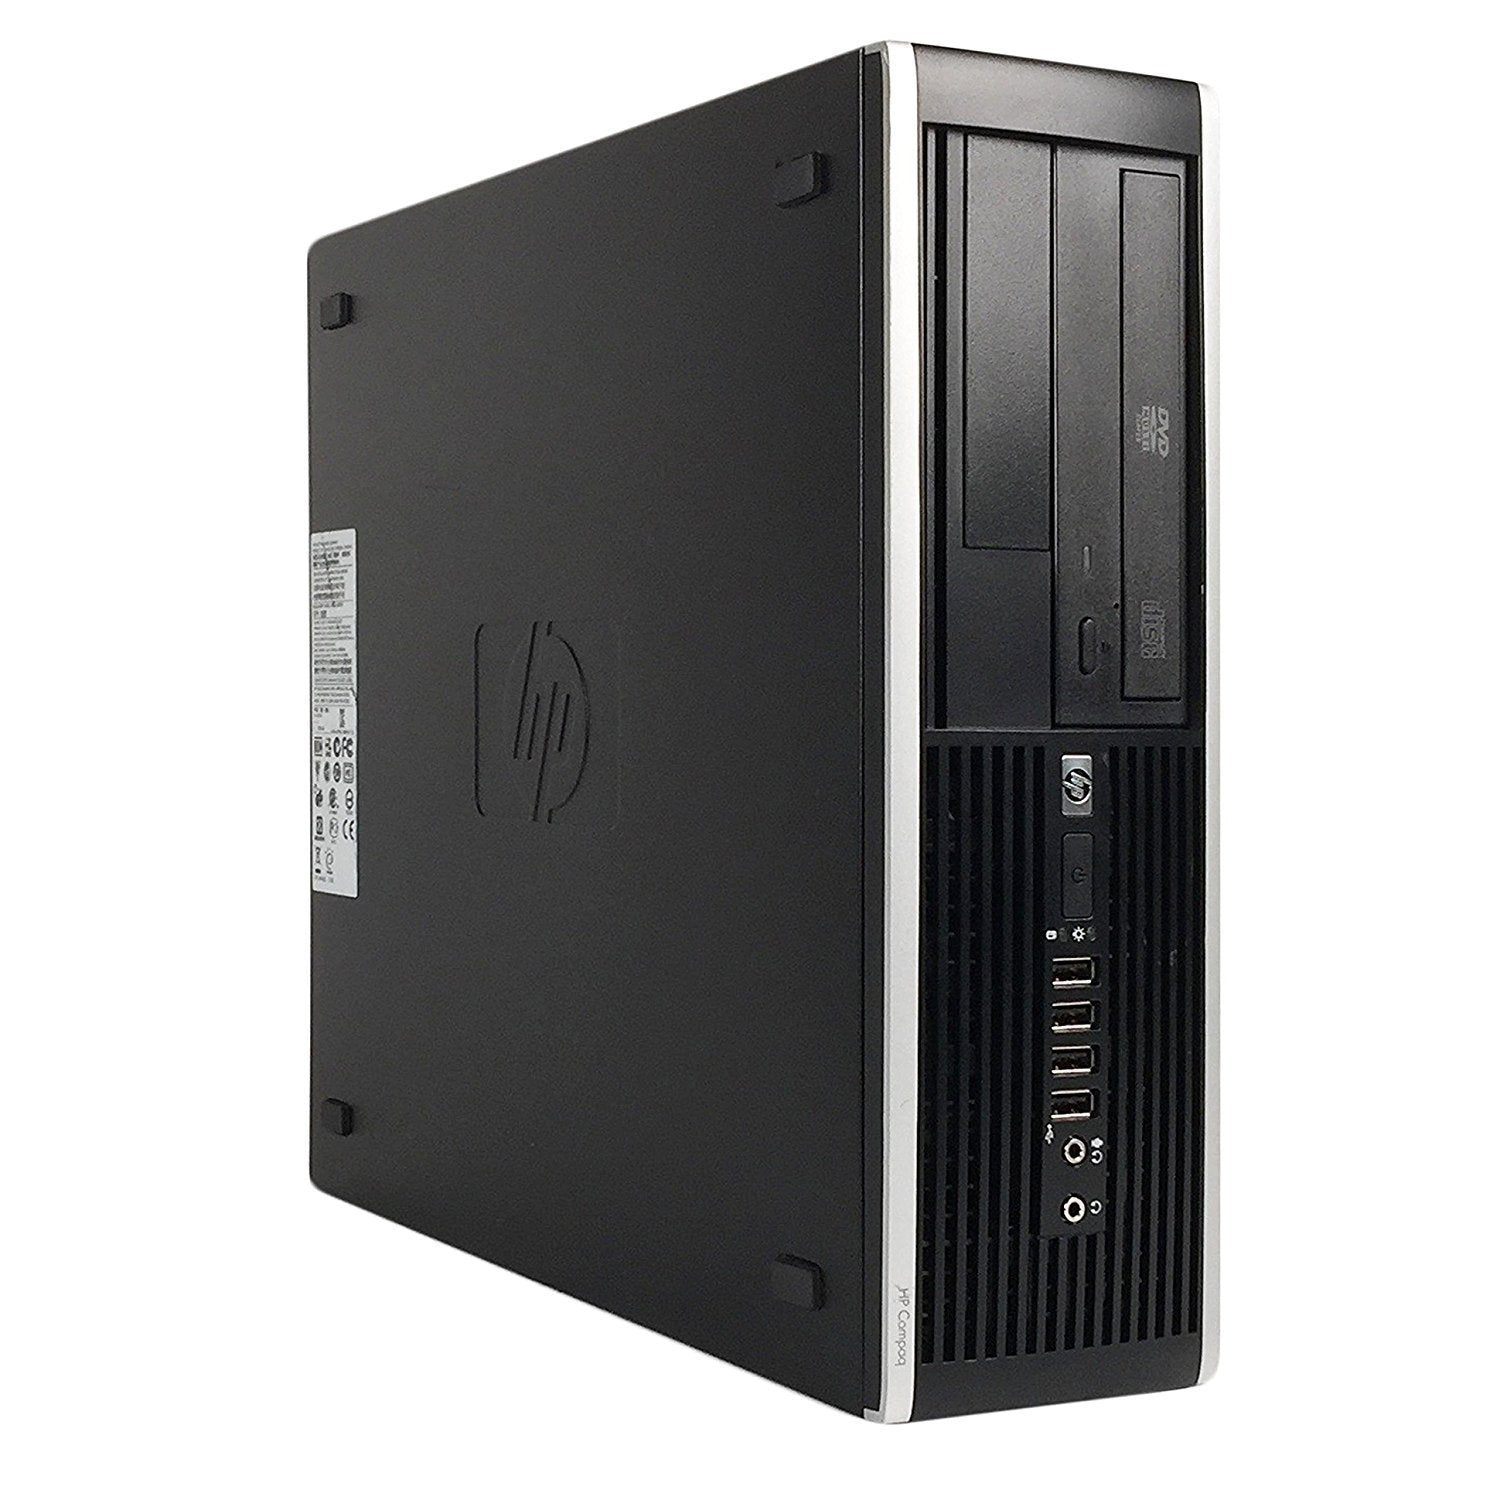 HP Compaq 6300 PRO Ex Lease SFF Desktop i7-3770 3.40GHz 8GB RAM 240GB SSD DVD-RW Windows 10 Pro